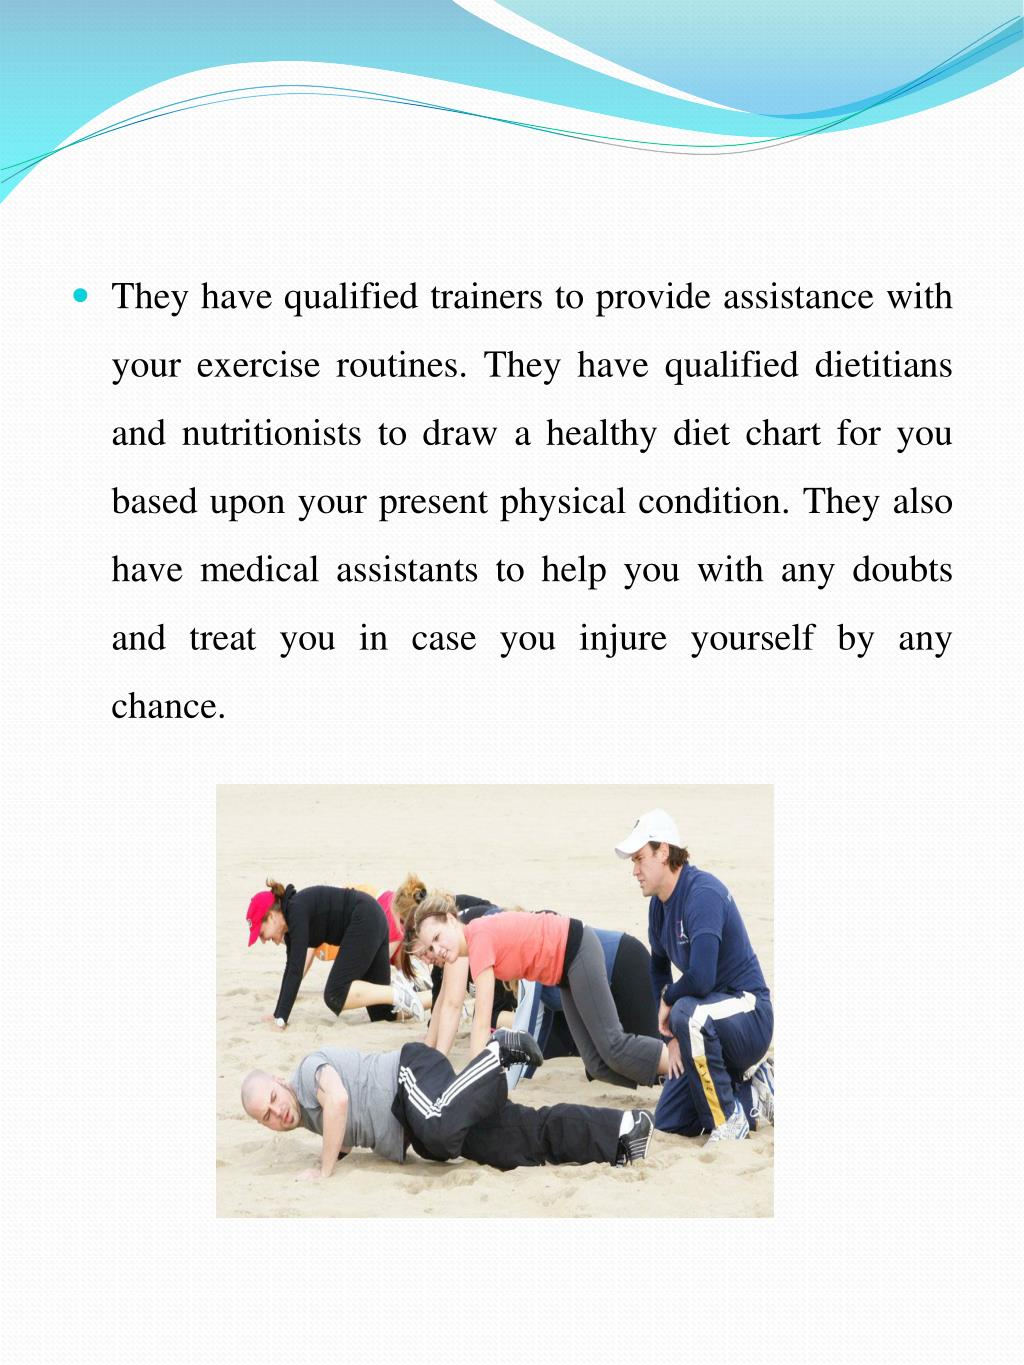 They have qualified trainers to provide assistance with your exercise routines. They have qualified dietitians and nutritionists to draw a healthy diet chart for you based upon your present physical condition. They also have medical assistants to help you with any doubts and treat you in case you injure yourself by any chance.